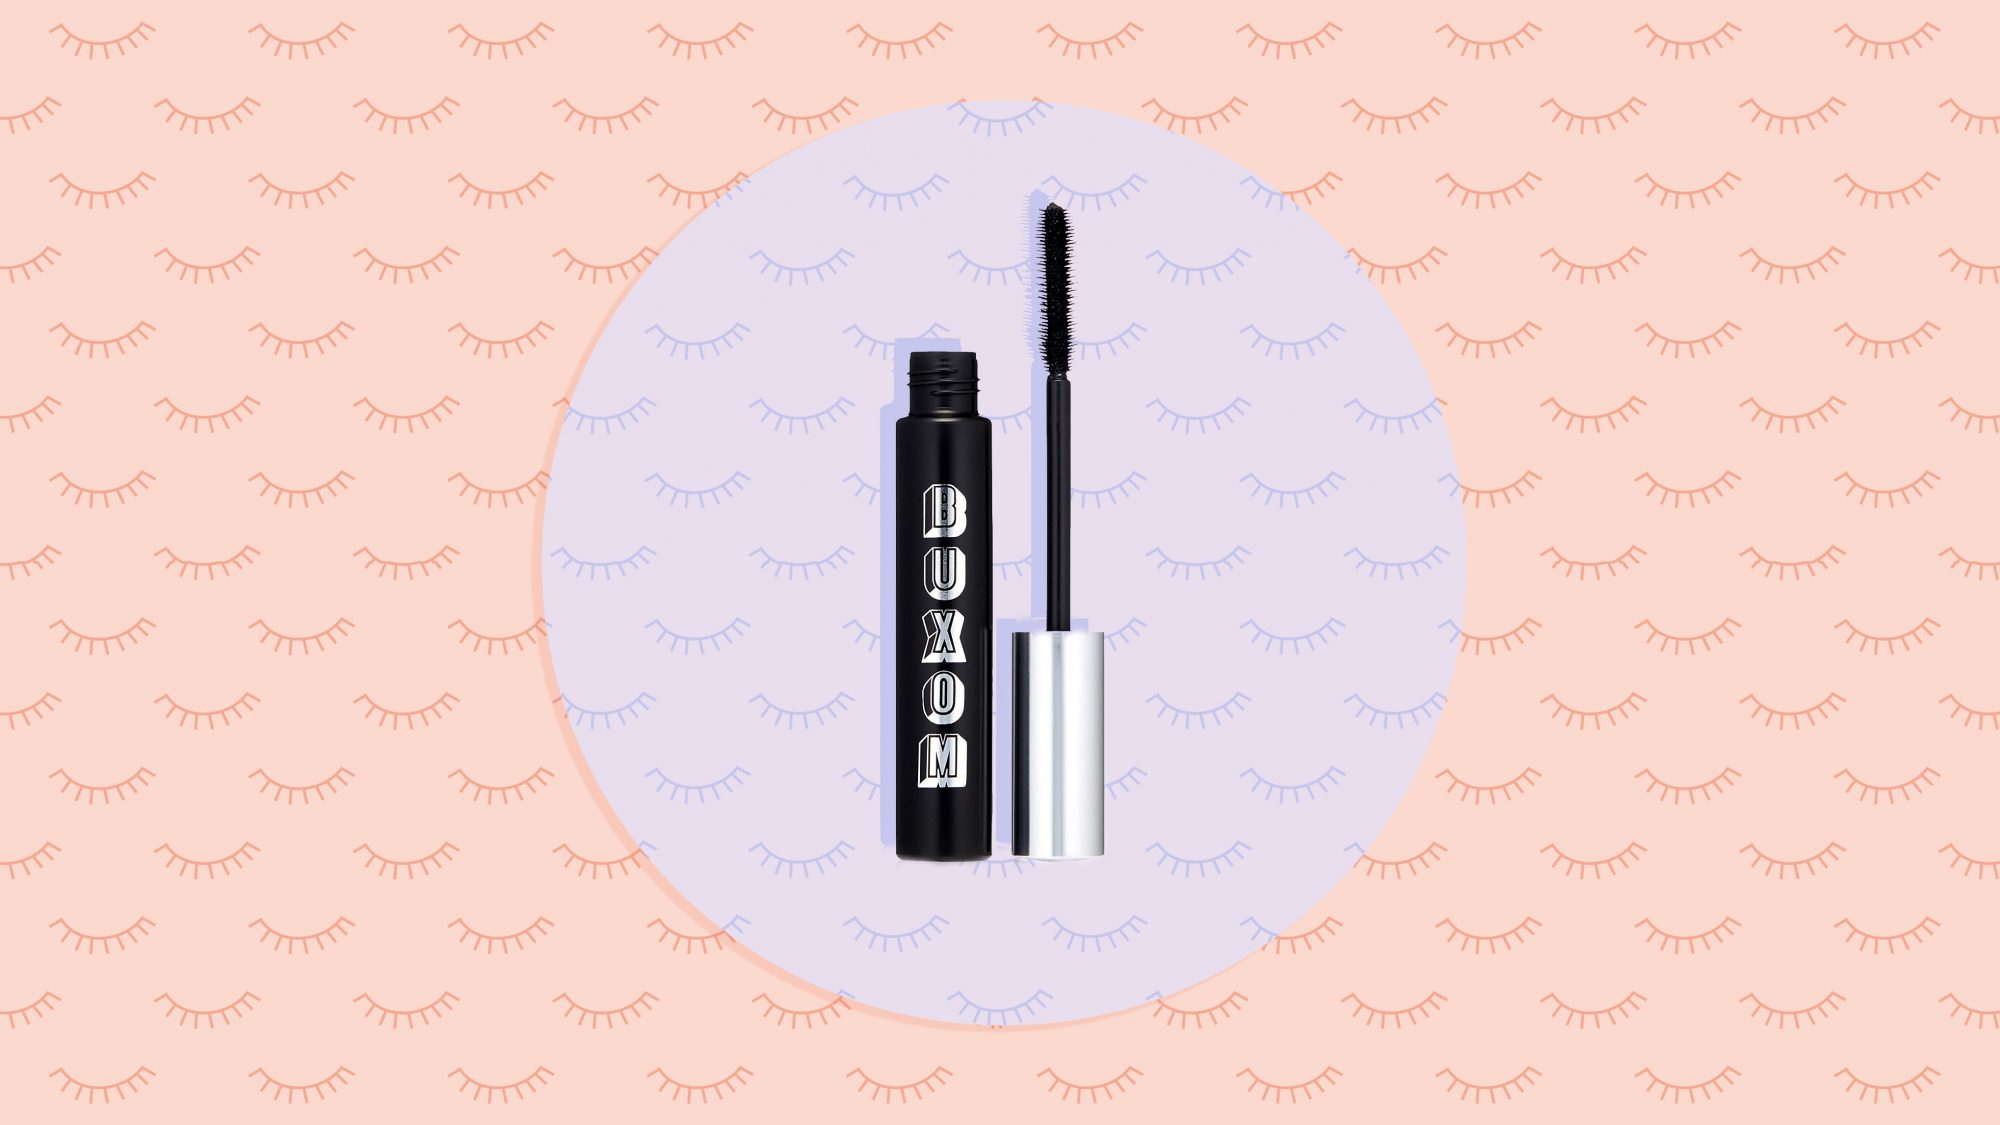 buxom-mascara amazon-primeday